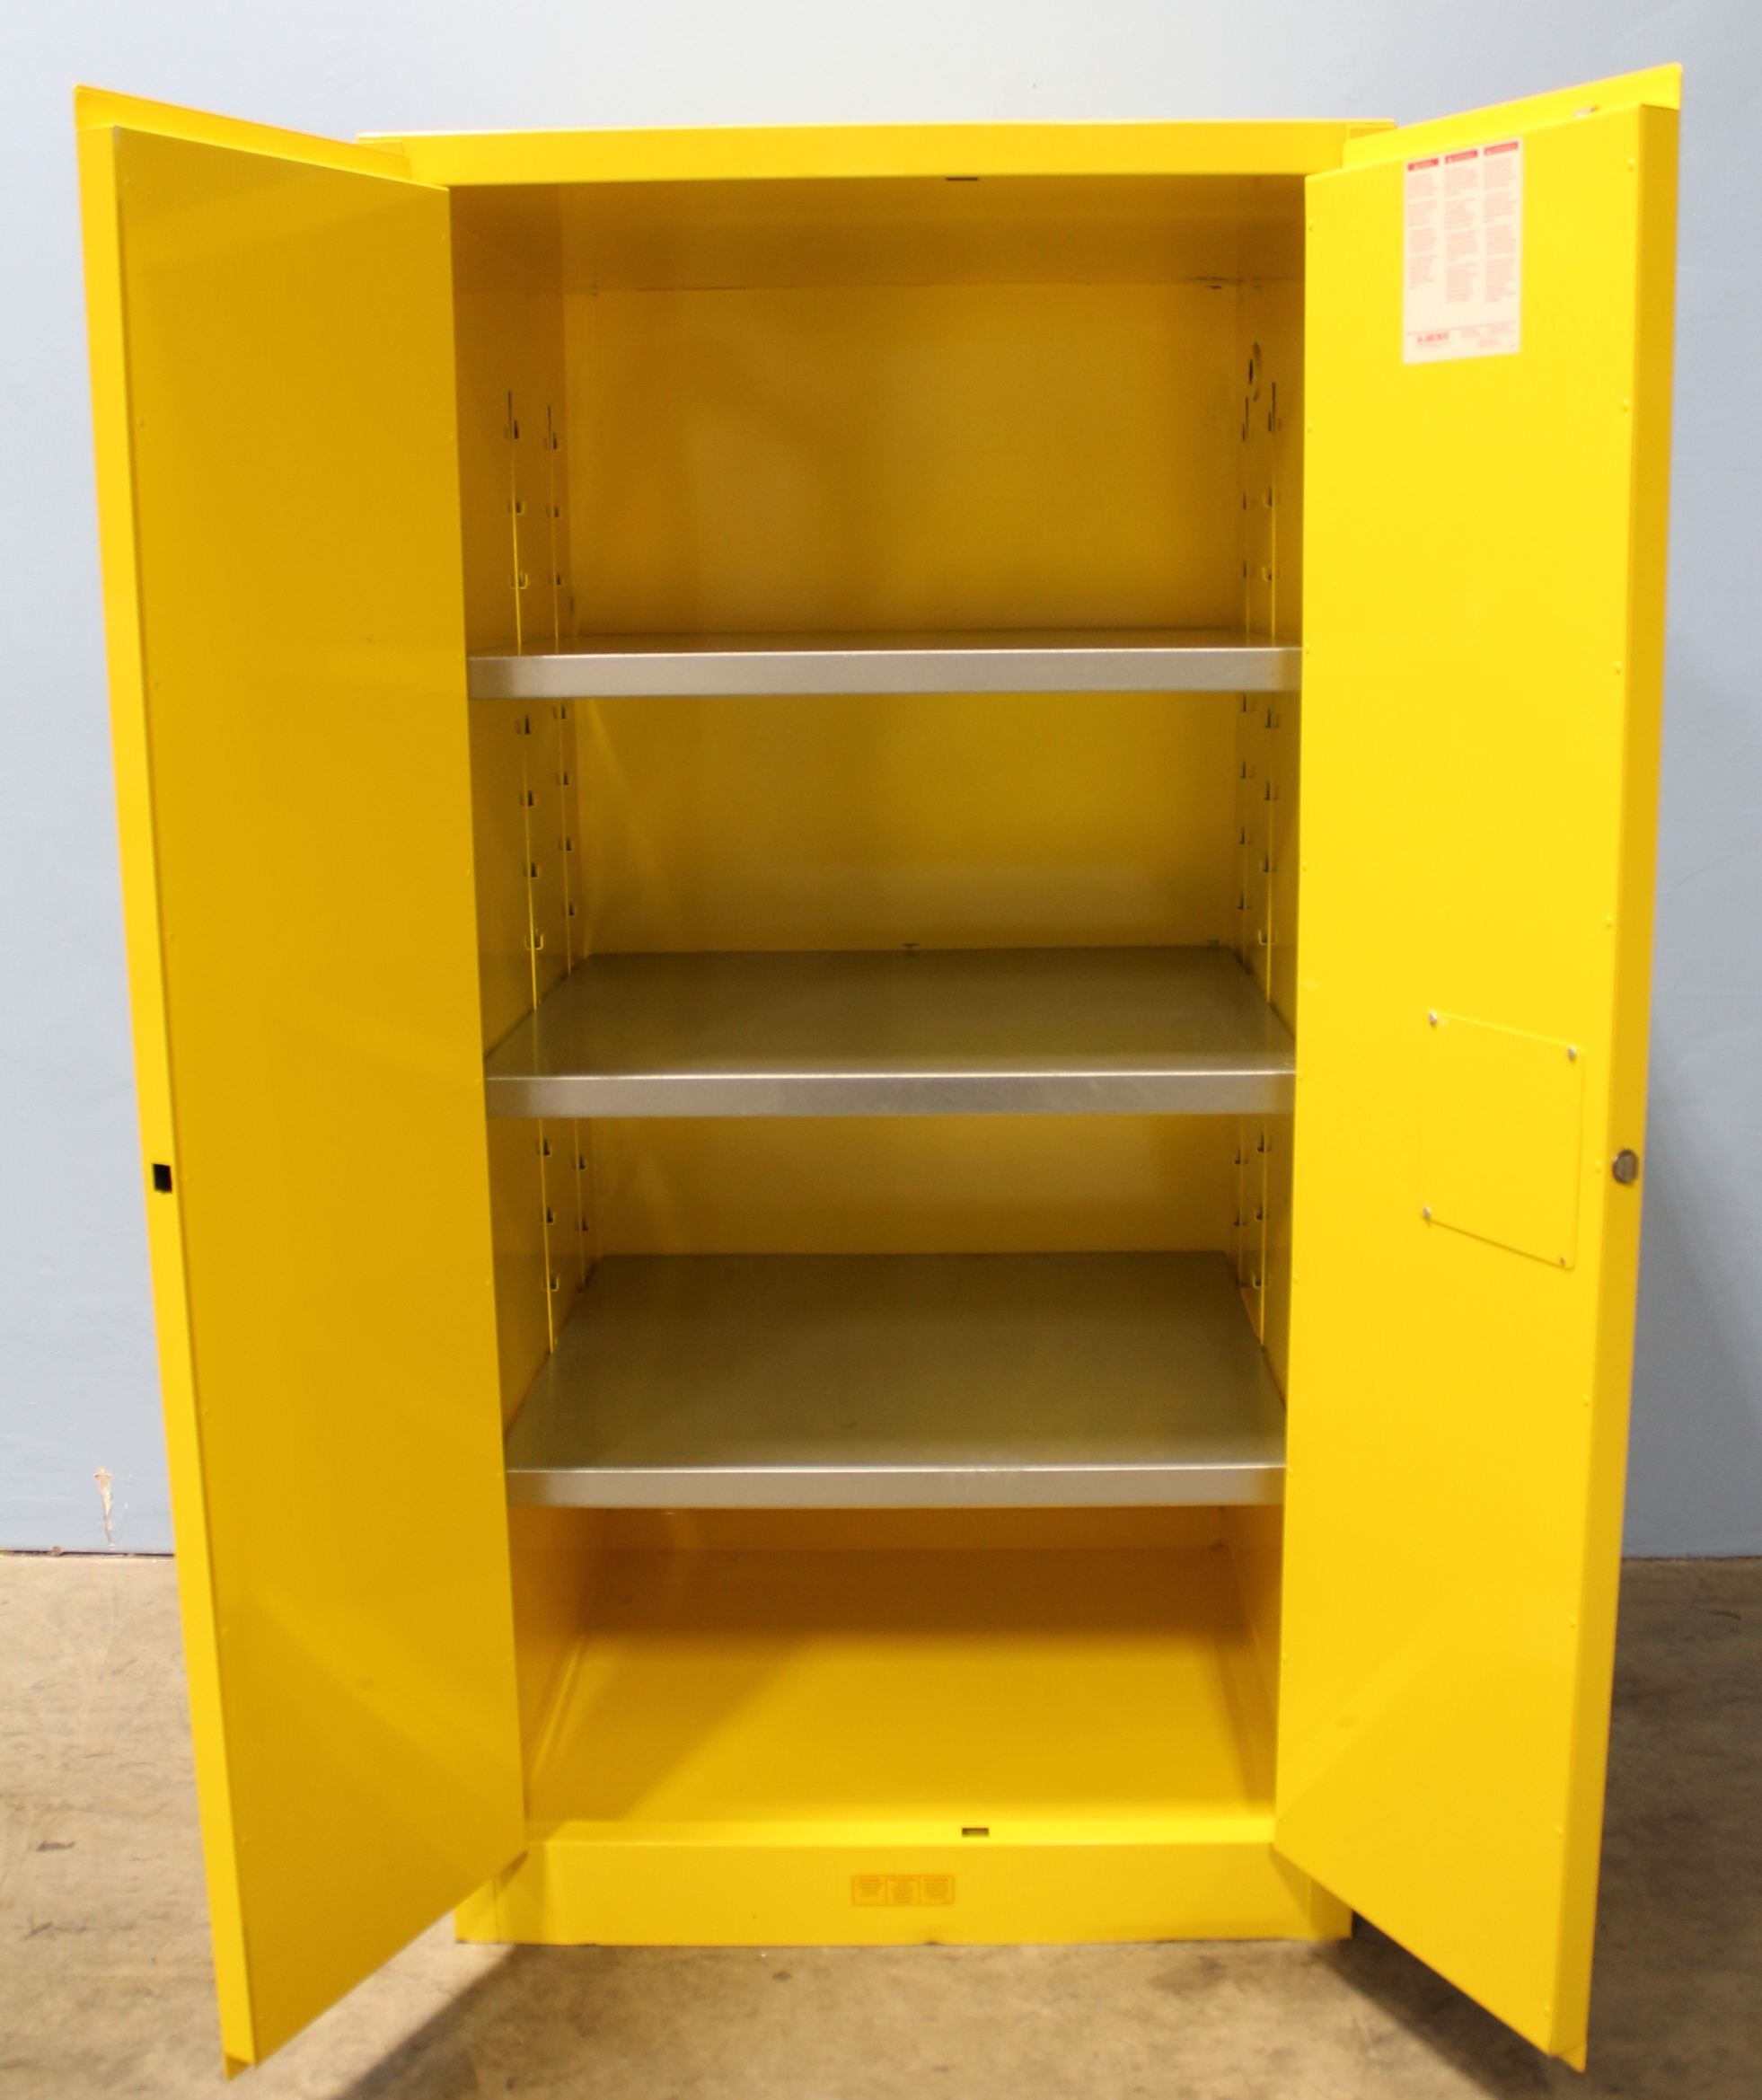 Refurbished Justrite Sure Grip Ex 896000 Flammable Safety Cabinet 60 Gallon